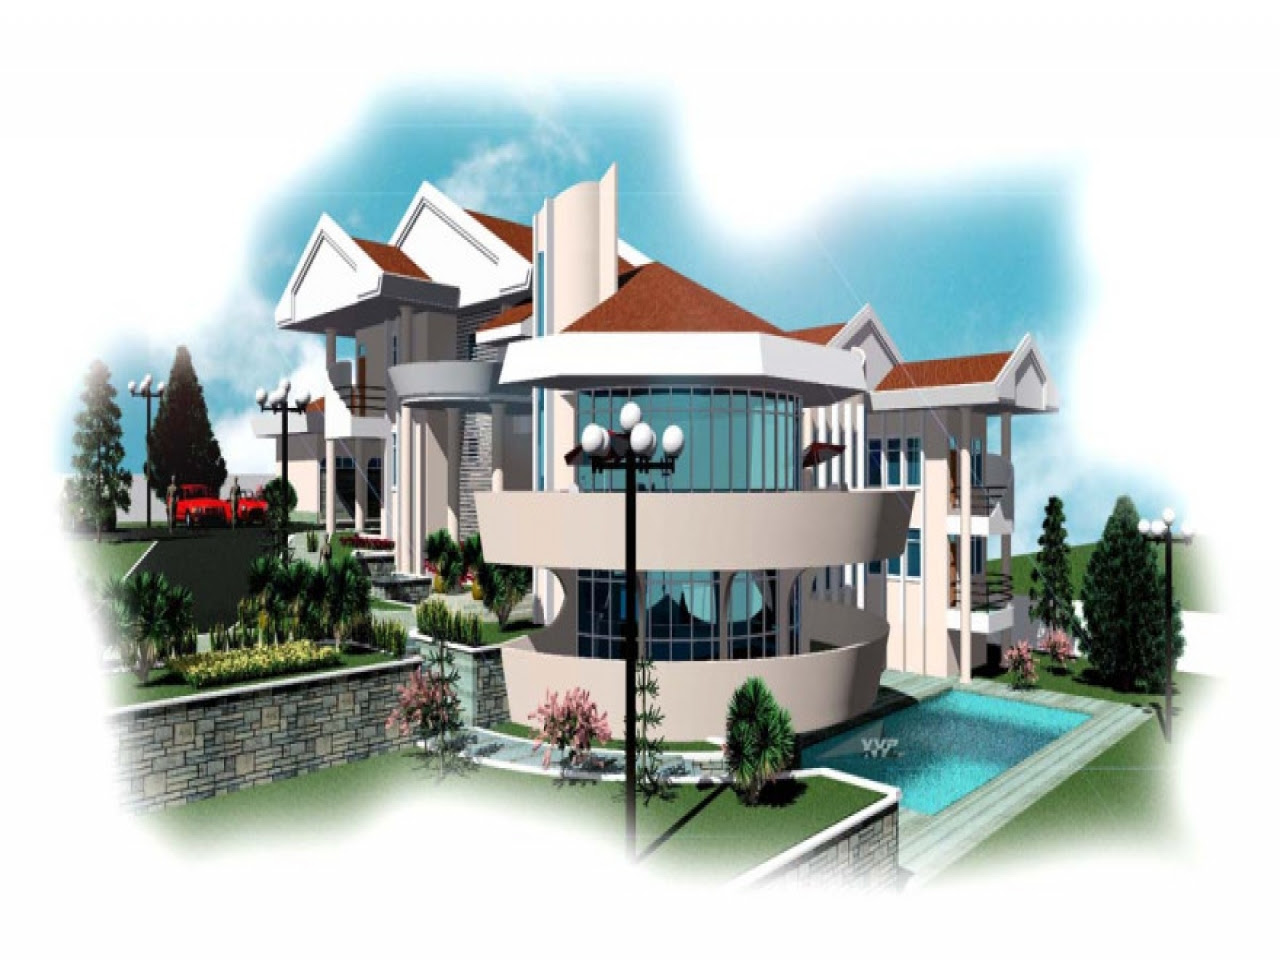 Architectural Designs House Plans in Ghana Ghana Homes ...